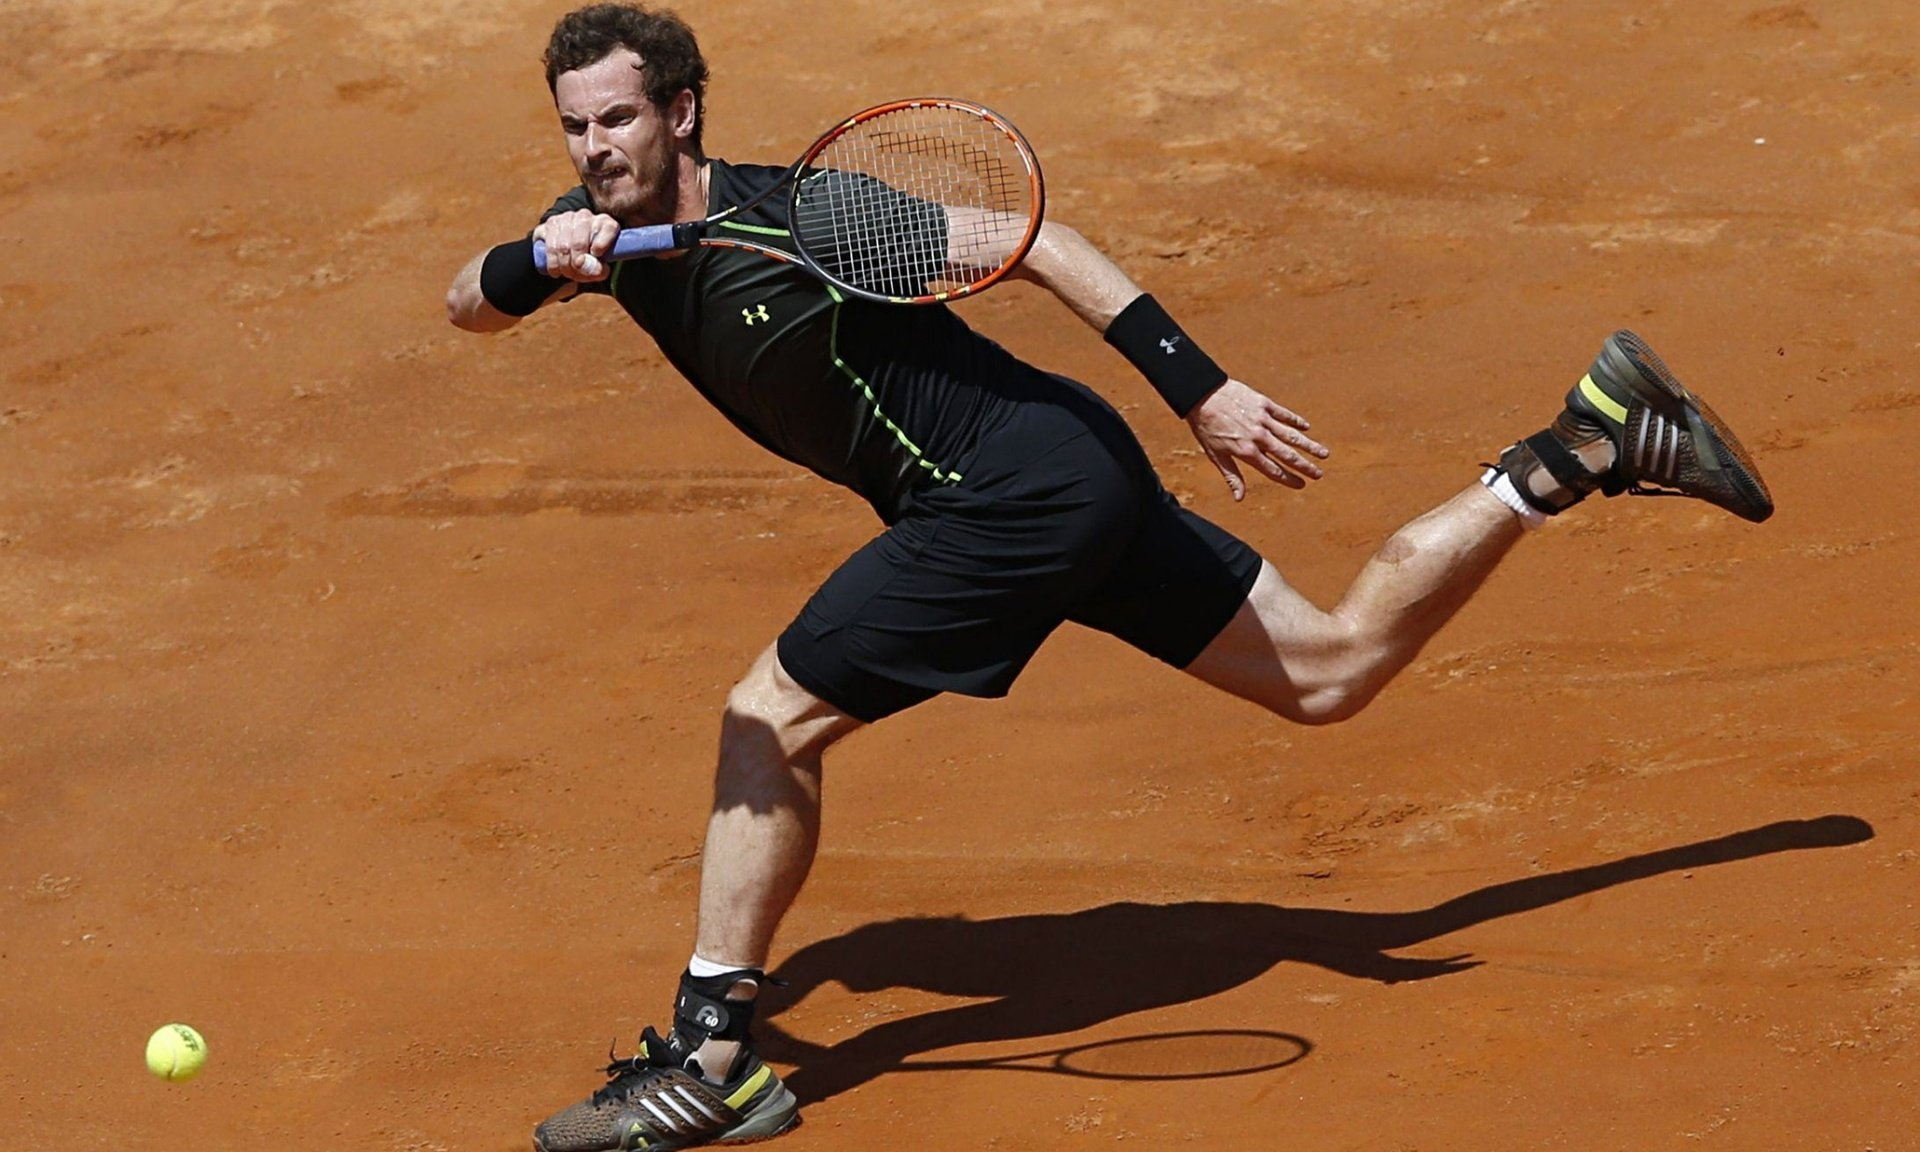 Andy Murray's feats of clay put him in mood and contention for French Open